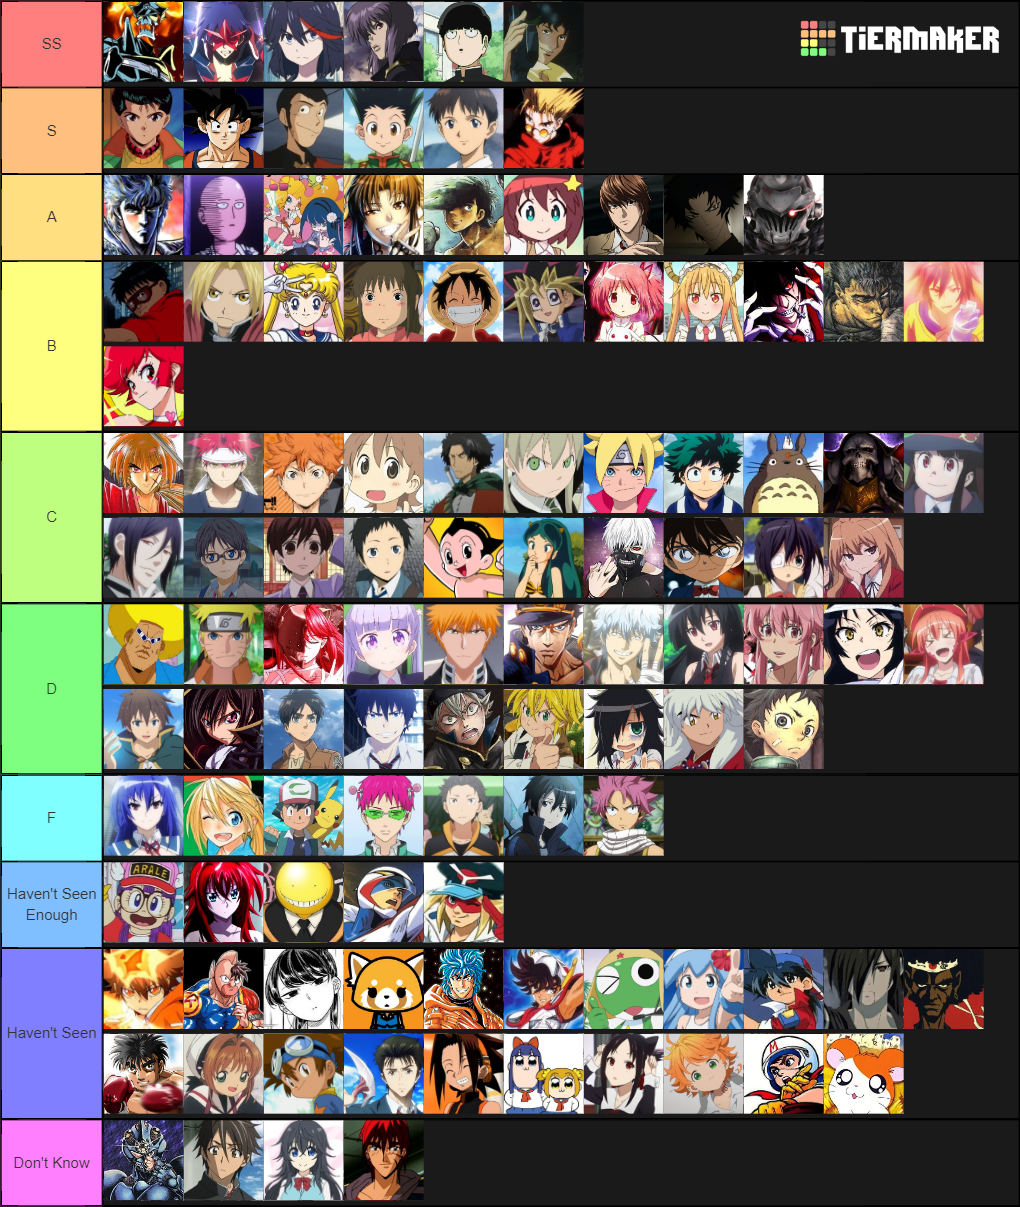 rank 111 of the best anime characters  tier lists